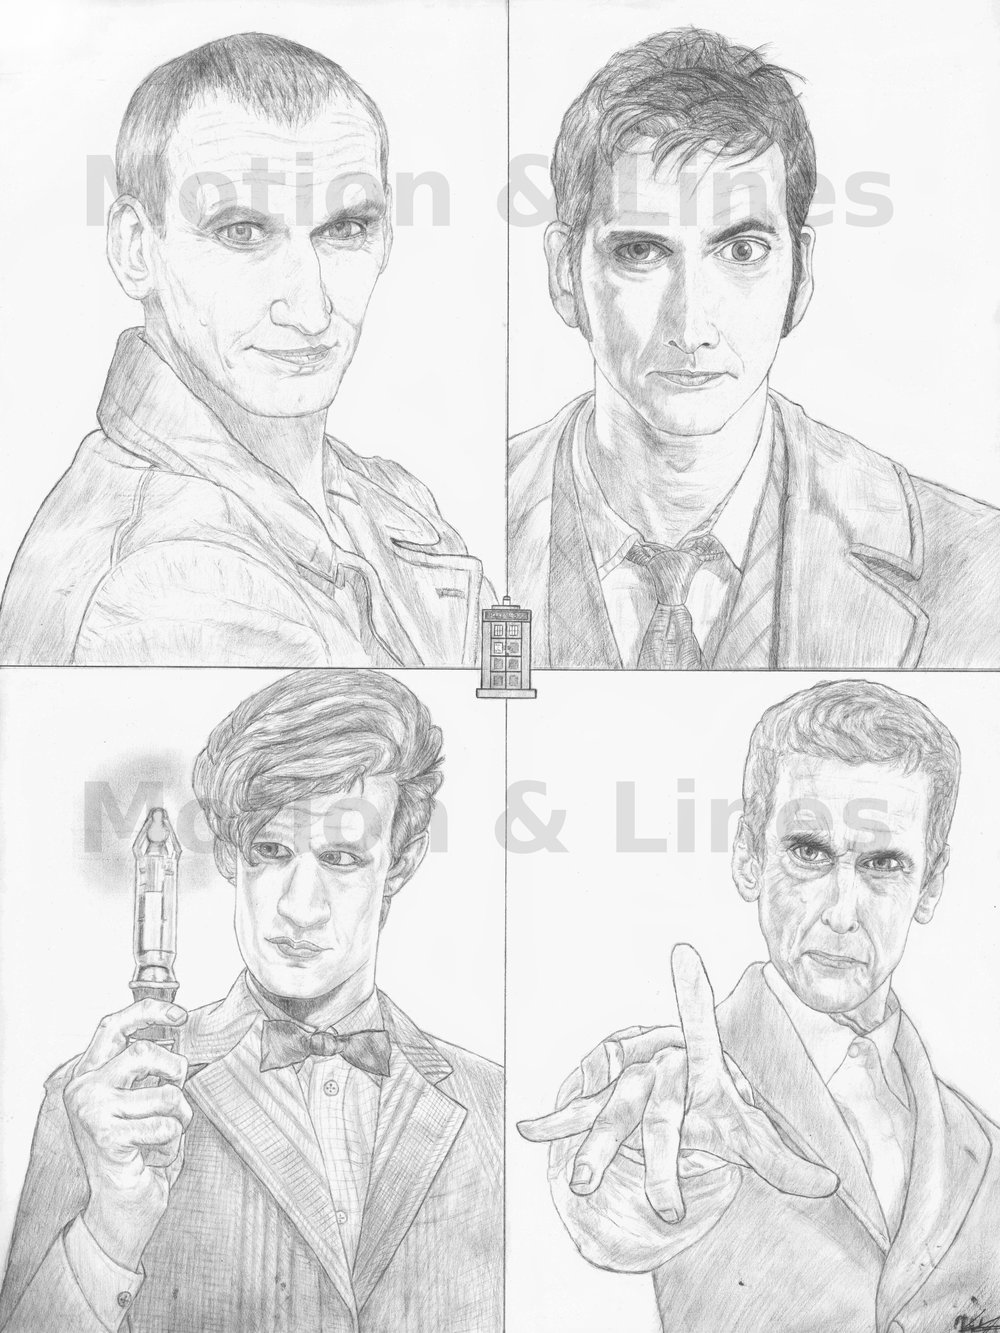 Doctors   18x24, drawn on Bristol paper with Tombow pencils. Prints available at the Store in both 18x24 and 11x17 sizes..